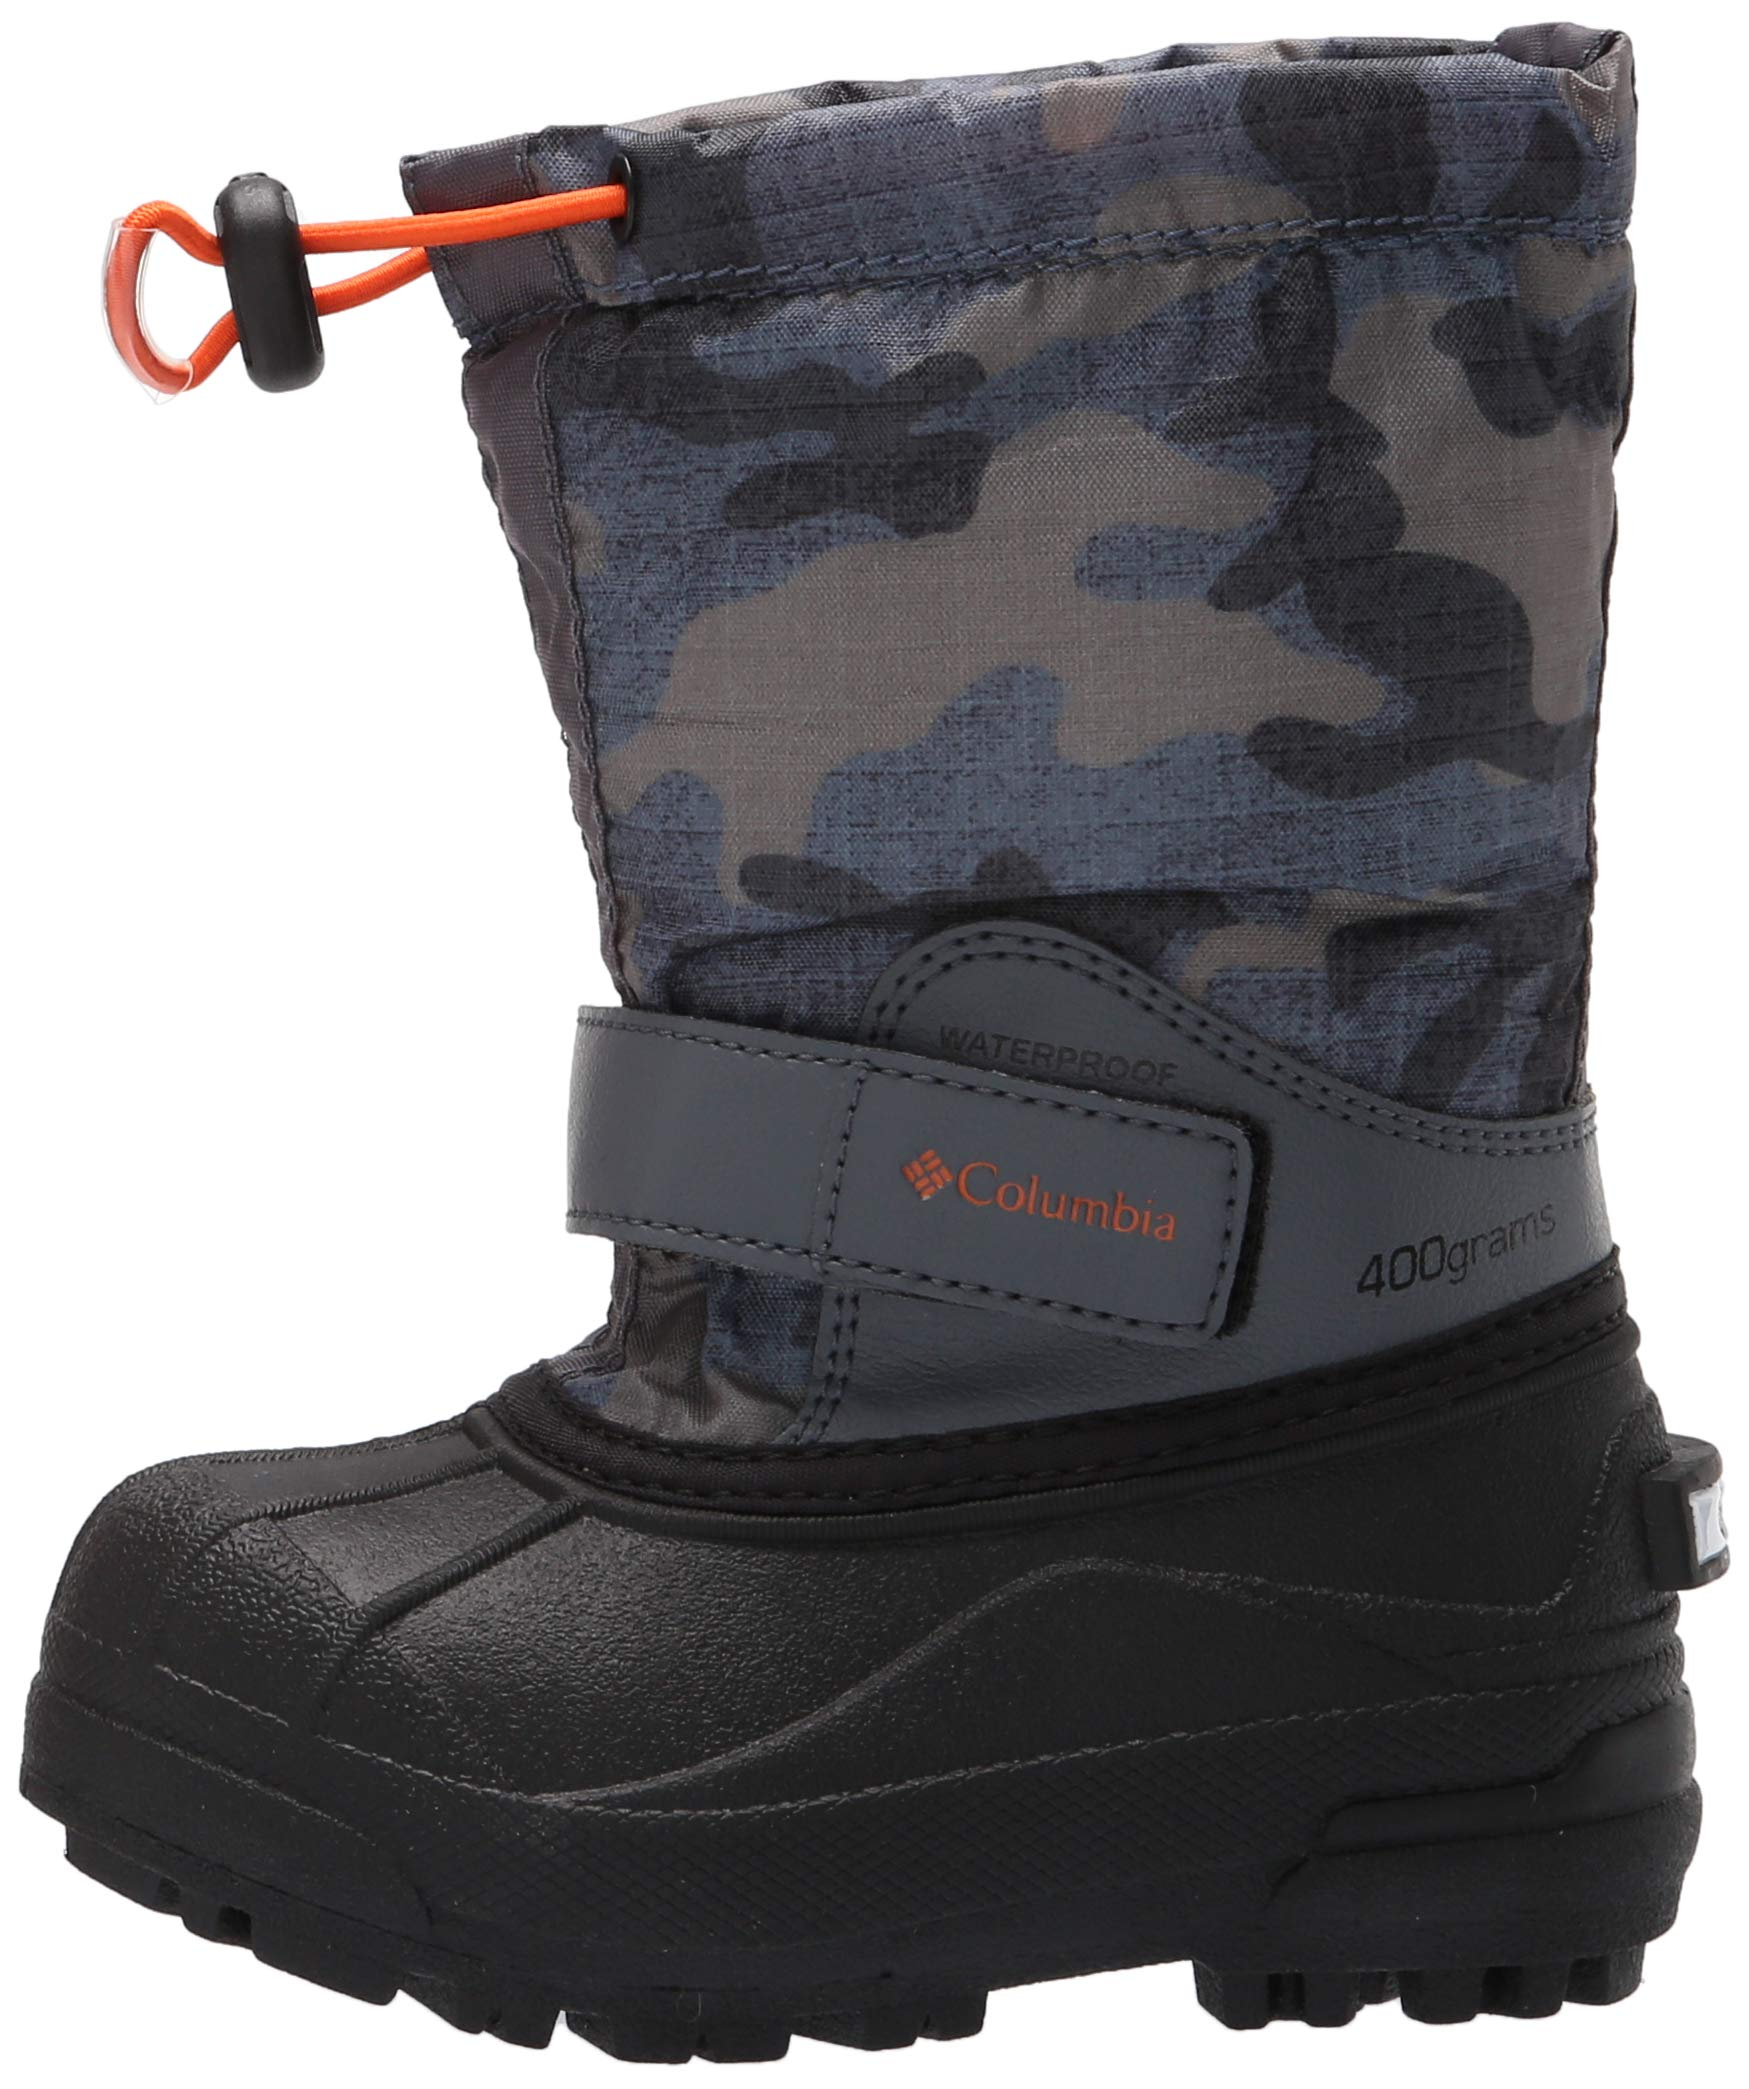 Columbia Boys' Childrens Powderbug Forty Print Snow Boot, Graphite, Heatwave, 8 Regular US Little Kid by Columbia (Image #5)